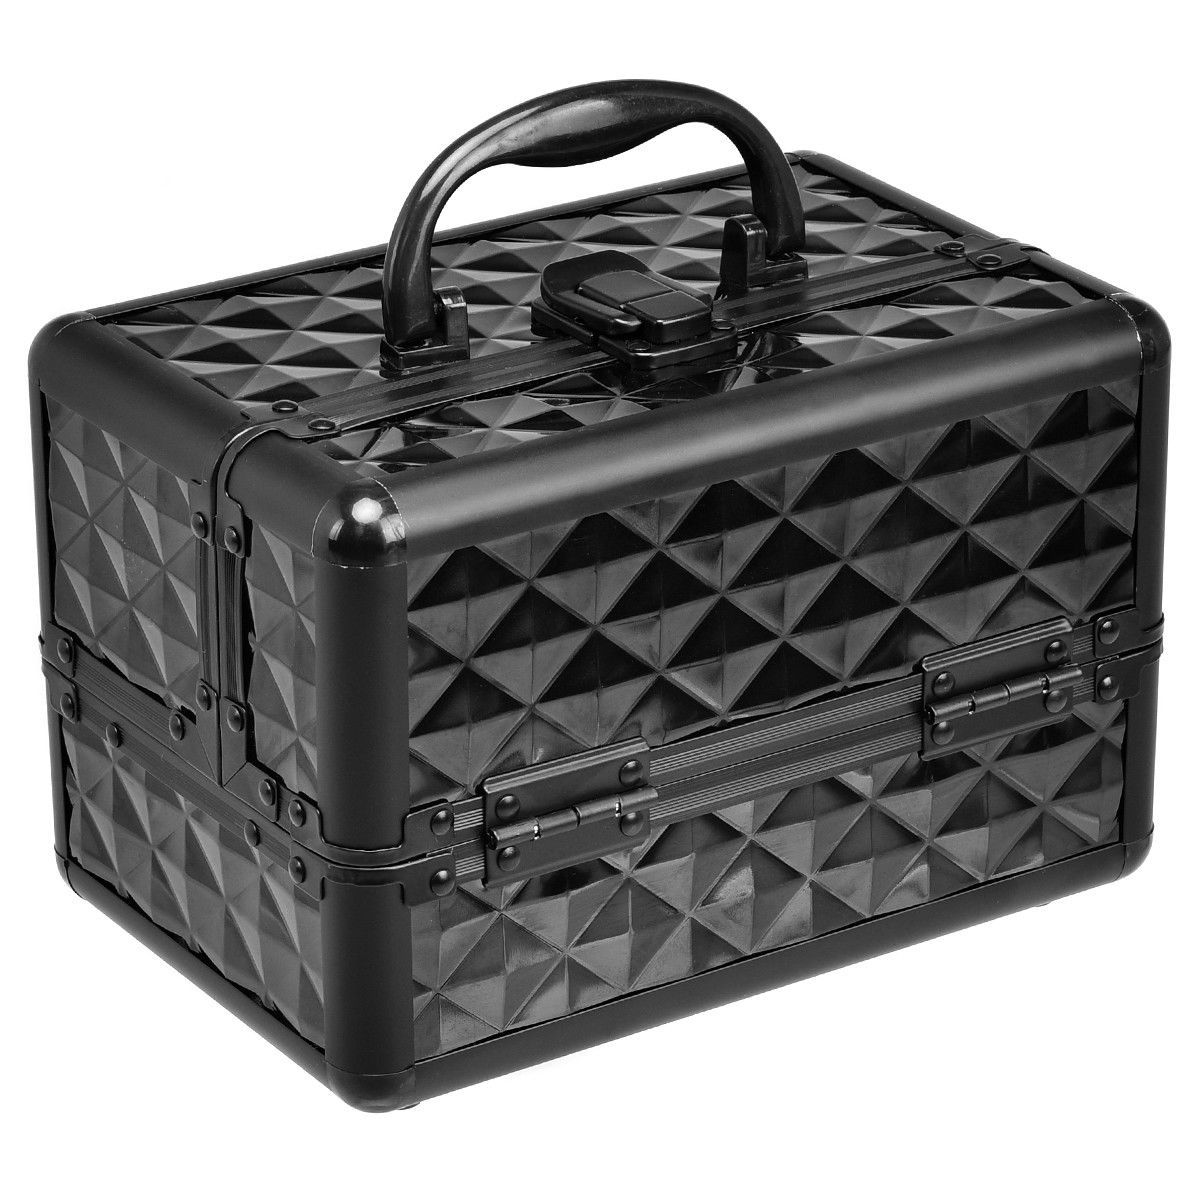 Gymax Makeup Organizer Cosmetic Case with Extendable Trays And Mirror Black